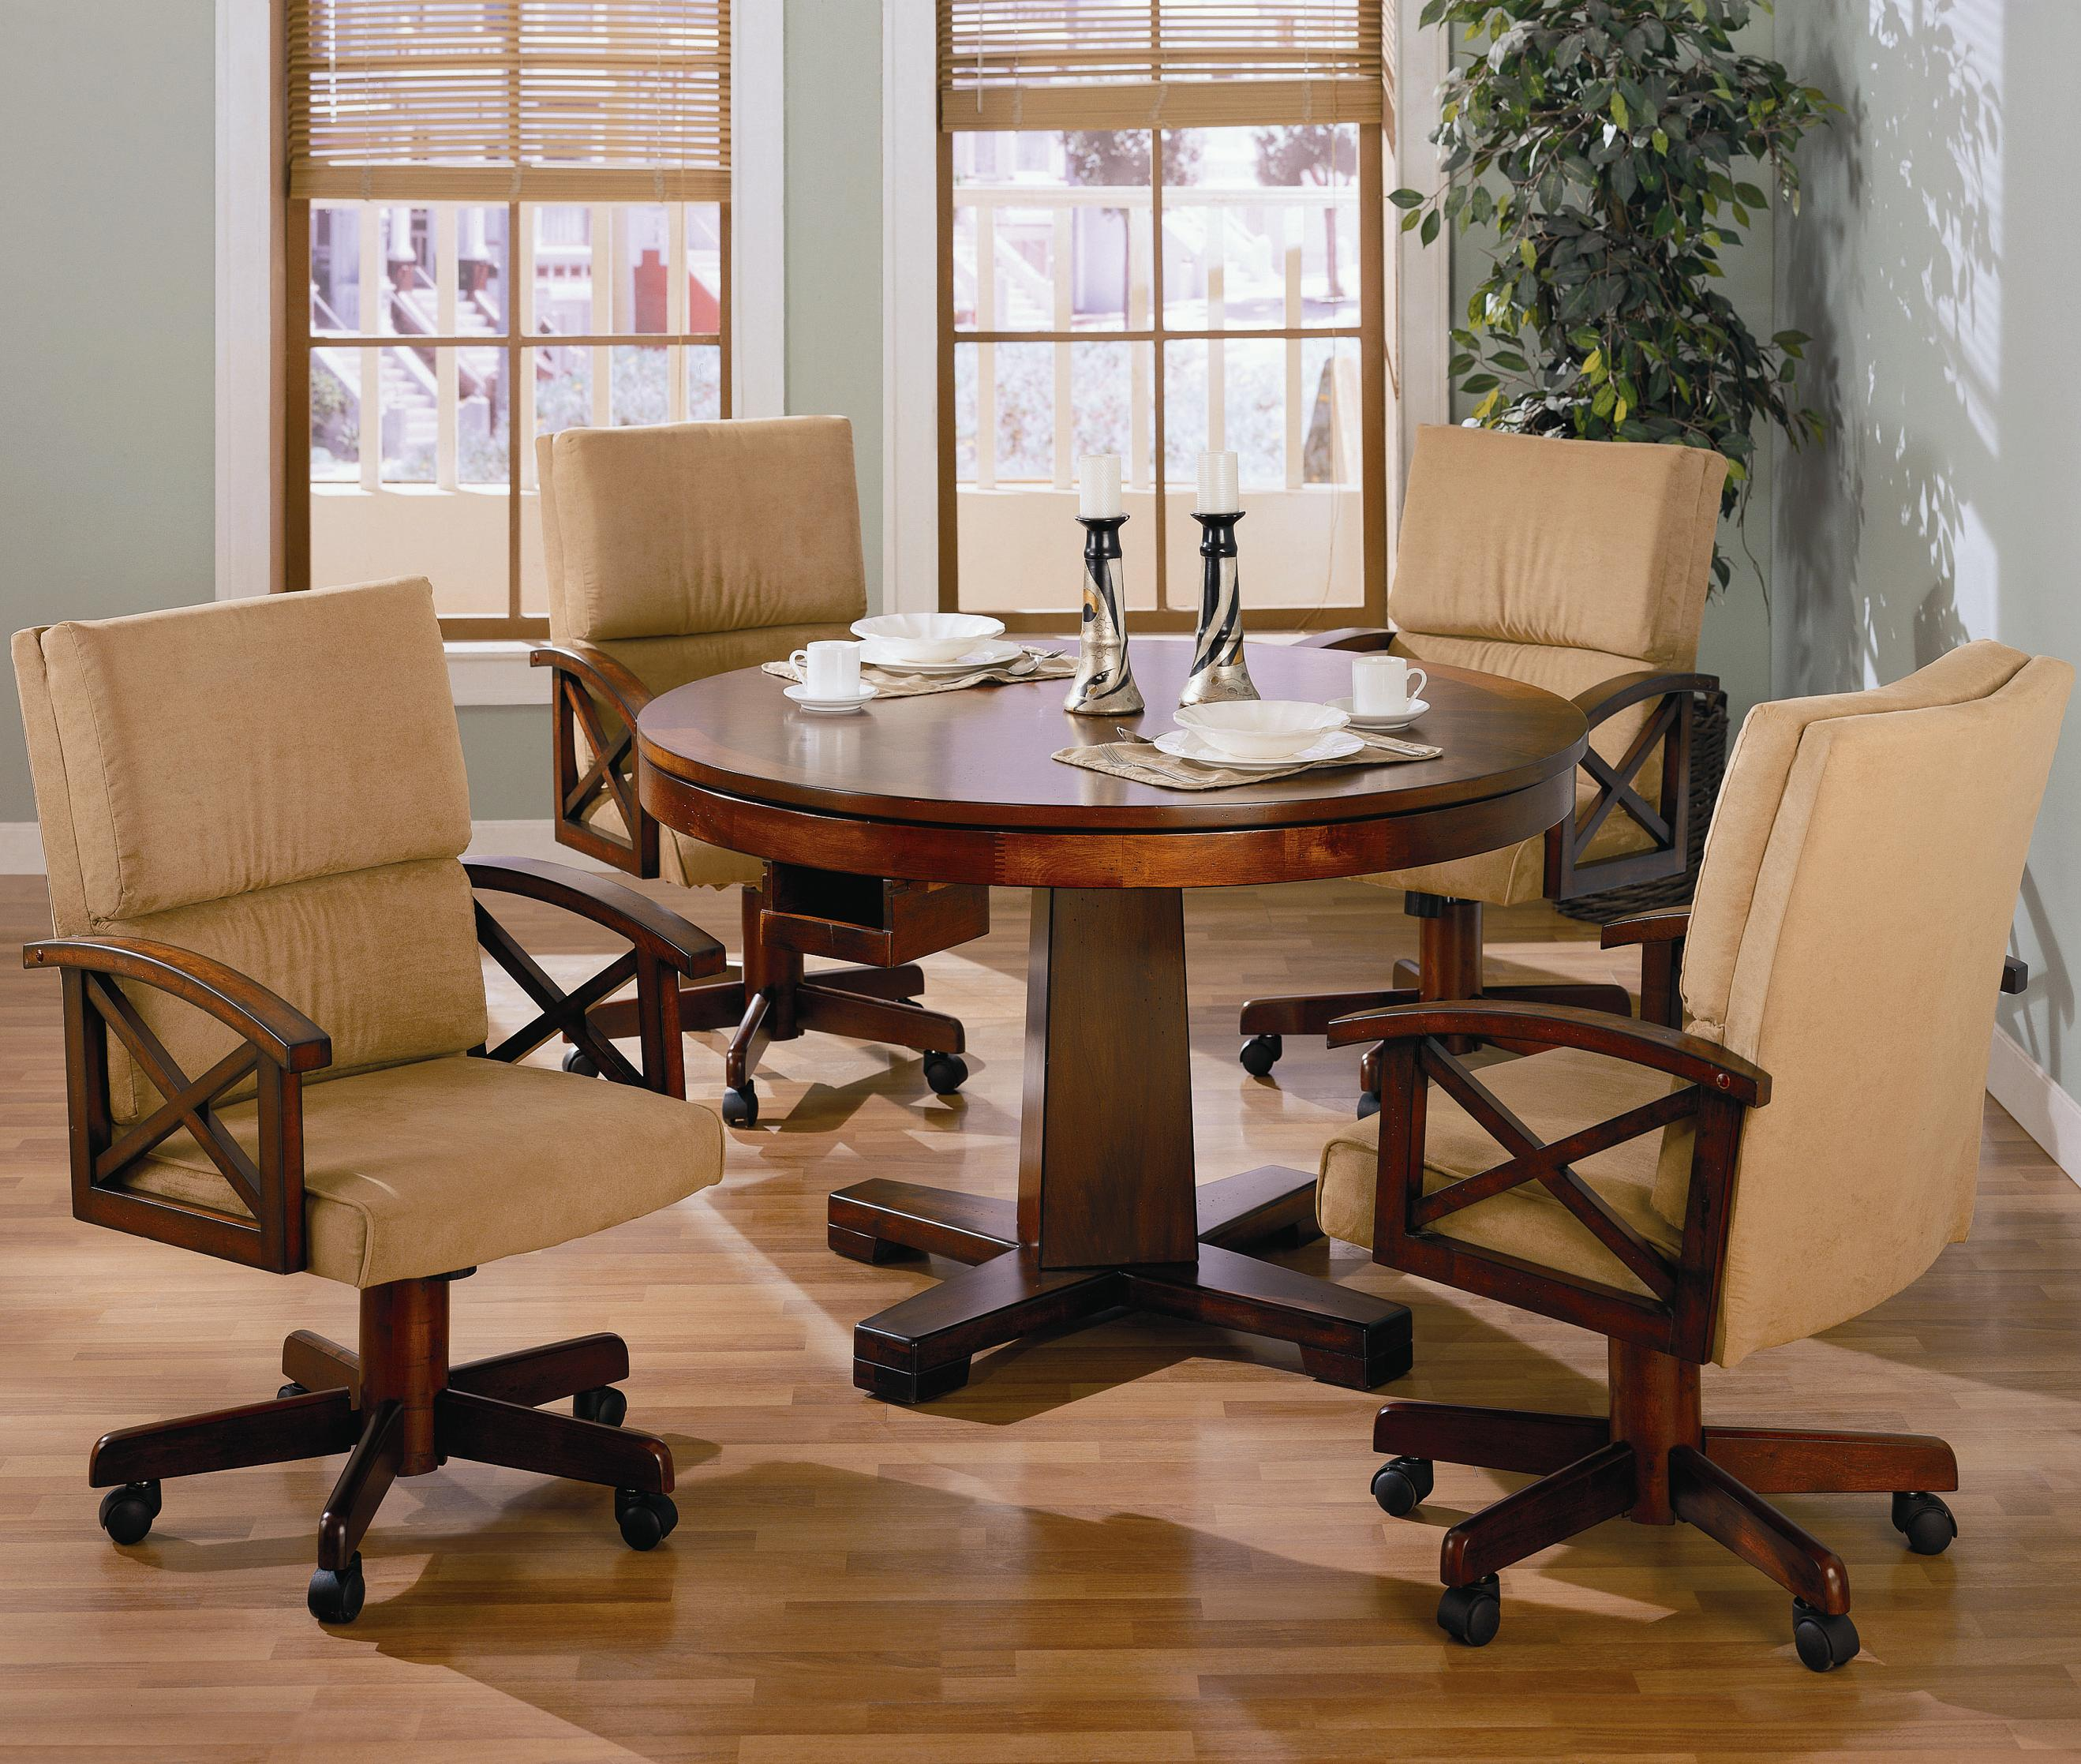 Coaster Marietta 100172 Game Chair | Northeast Factory Direct | Dining  Chairs With Casters Cleveland, Eastlake, Westlake, Mentor, Medina, Ohio